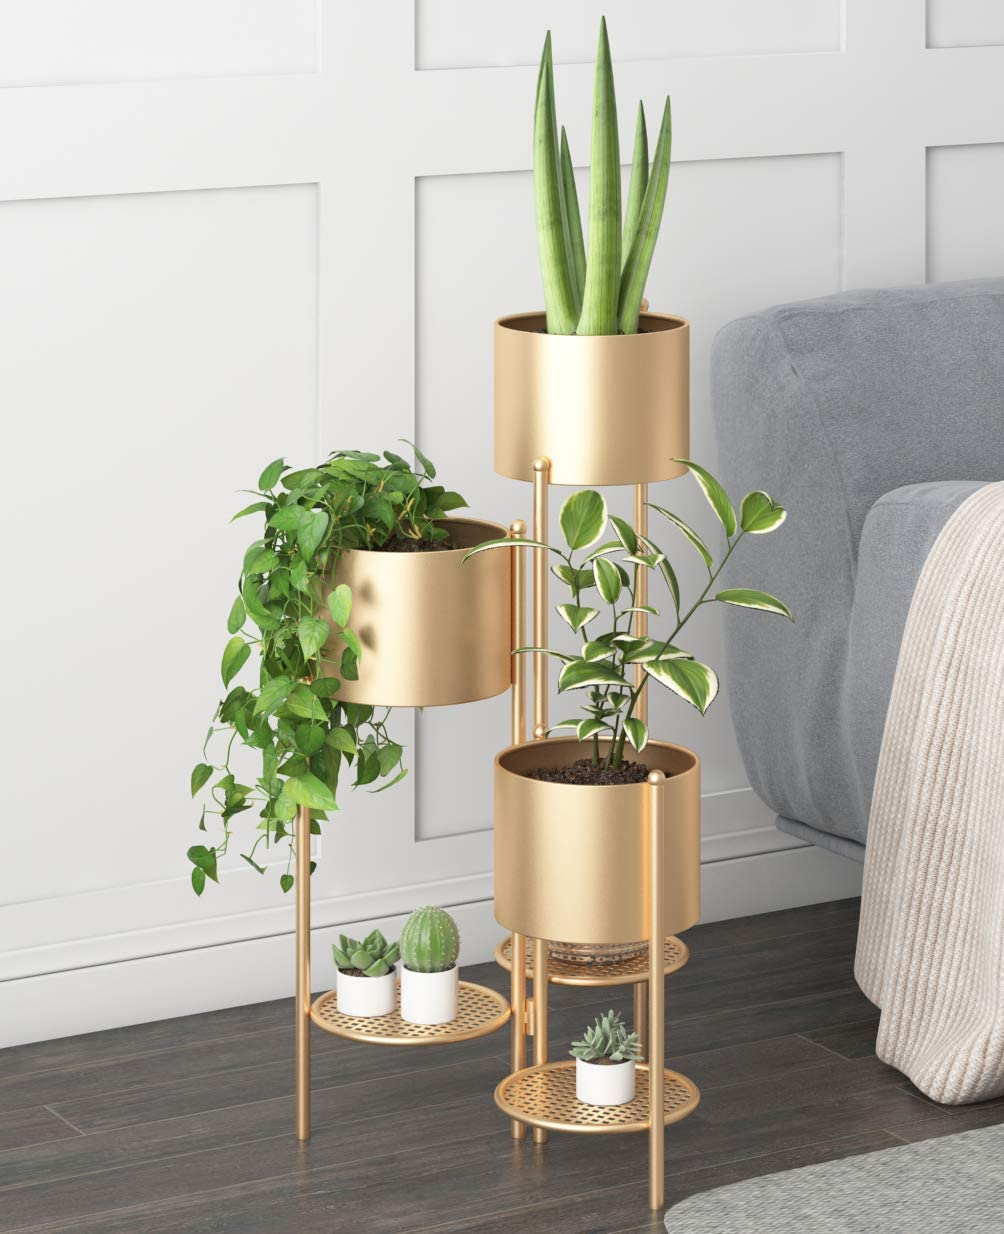 Metal Plant Stand 6 Tier Potted Sta Pot New products world's highest quality popular Outdoor Flower Max 62% OFF Indoor